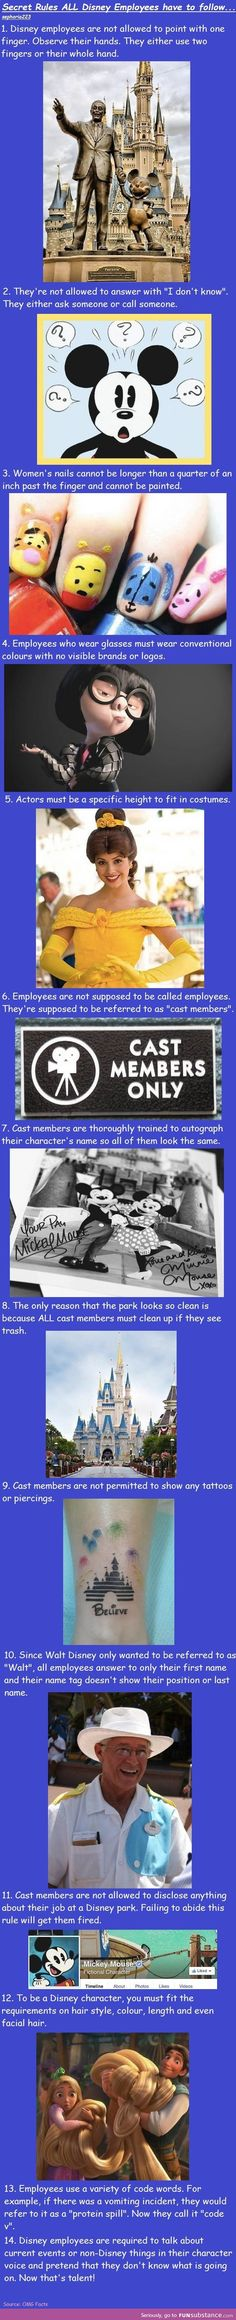 disney employee facts                                                                                                                                                      More